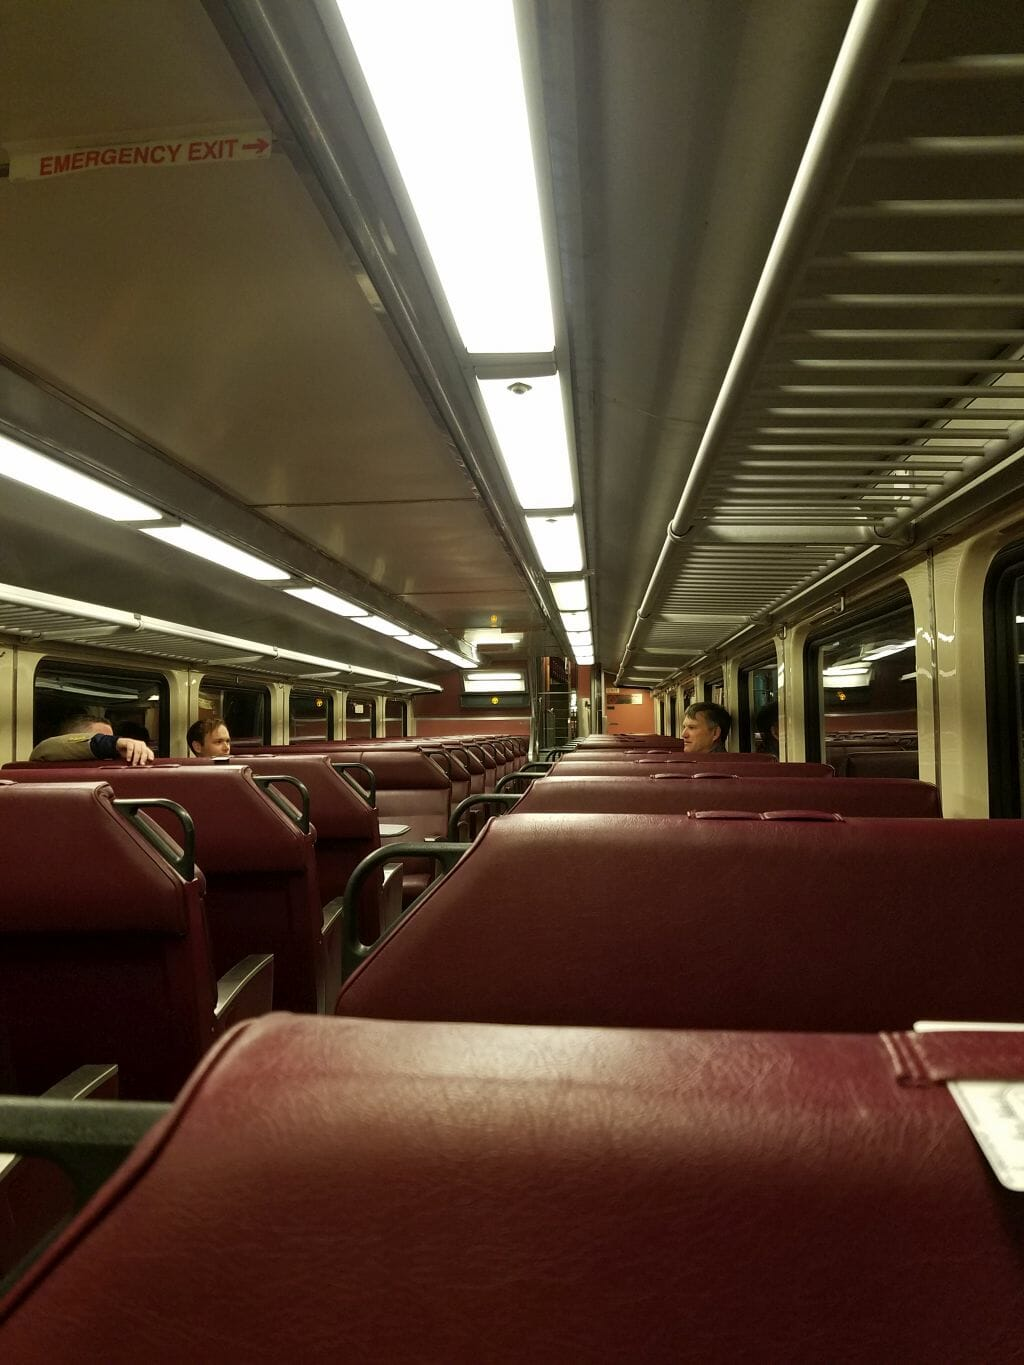 Anime Boston - Day Zero - A shot of the interior of the commuter rail to Boston on April 18, 2019